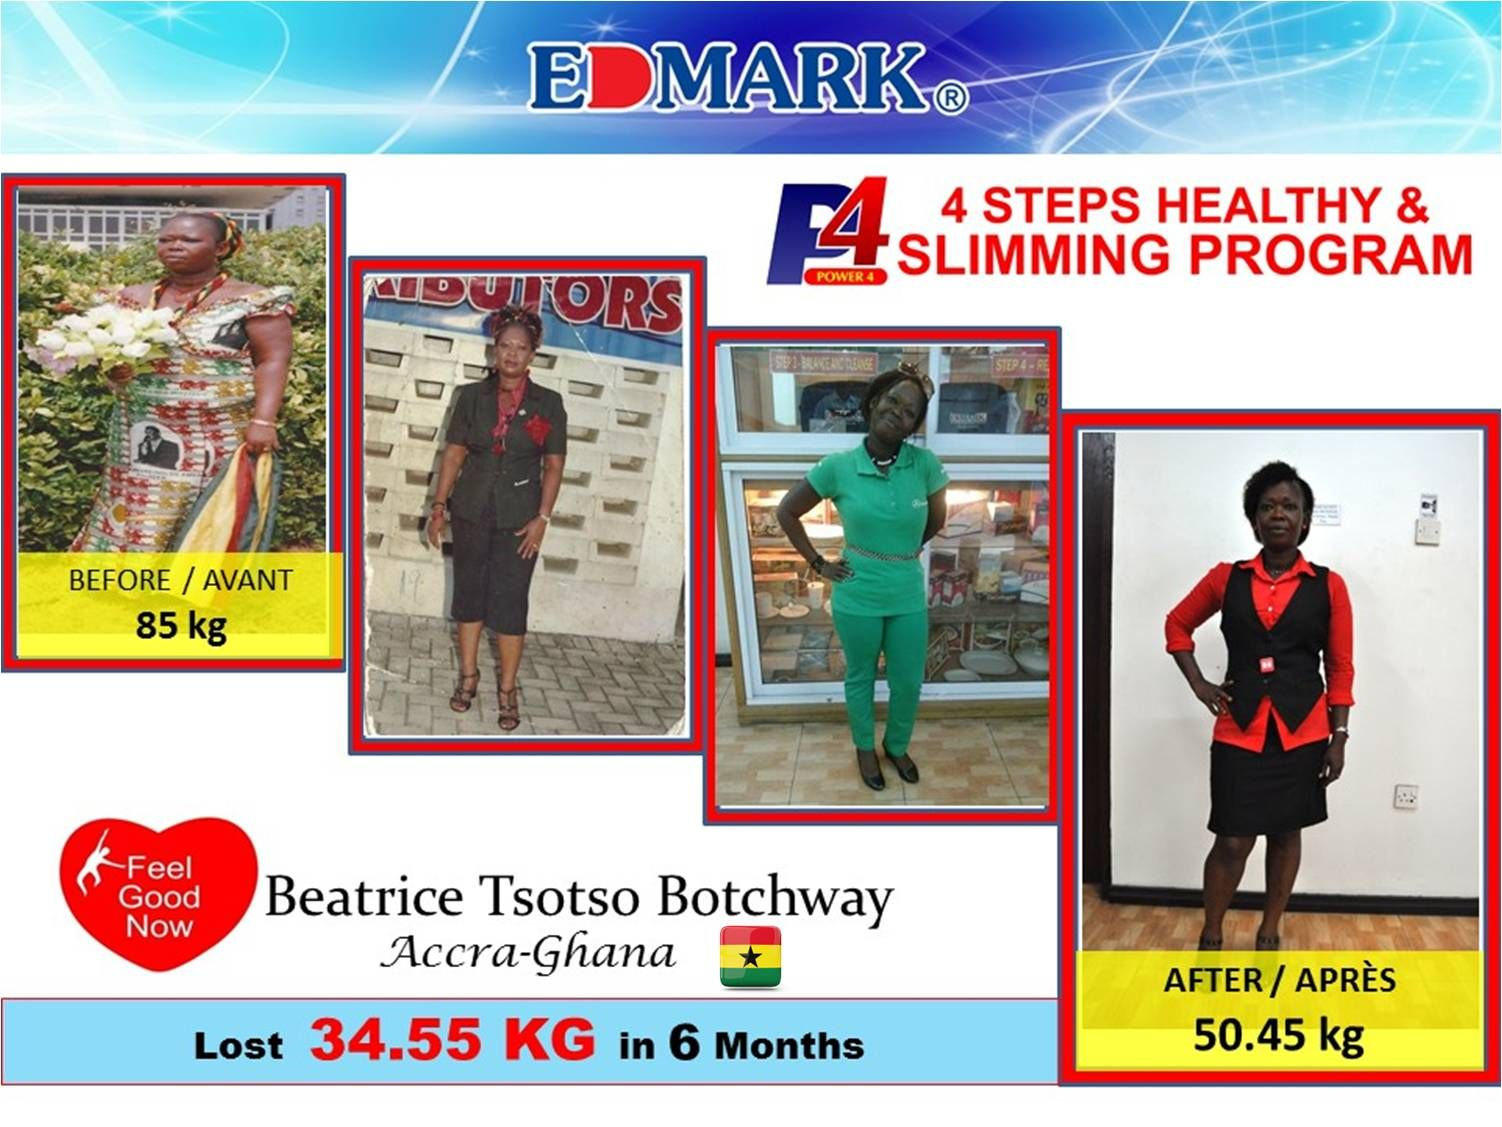 Medicare covered weight loss programs